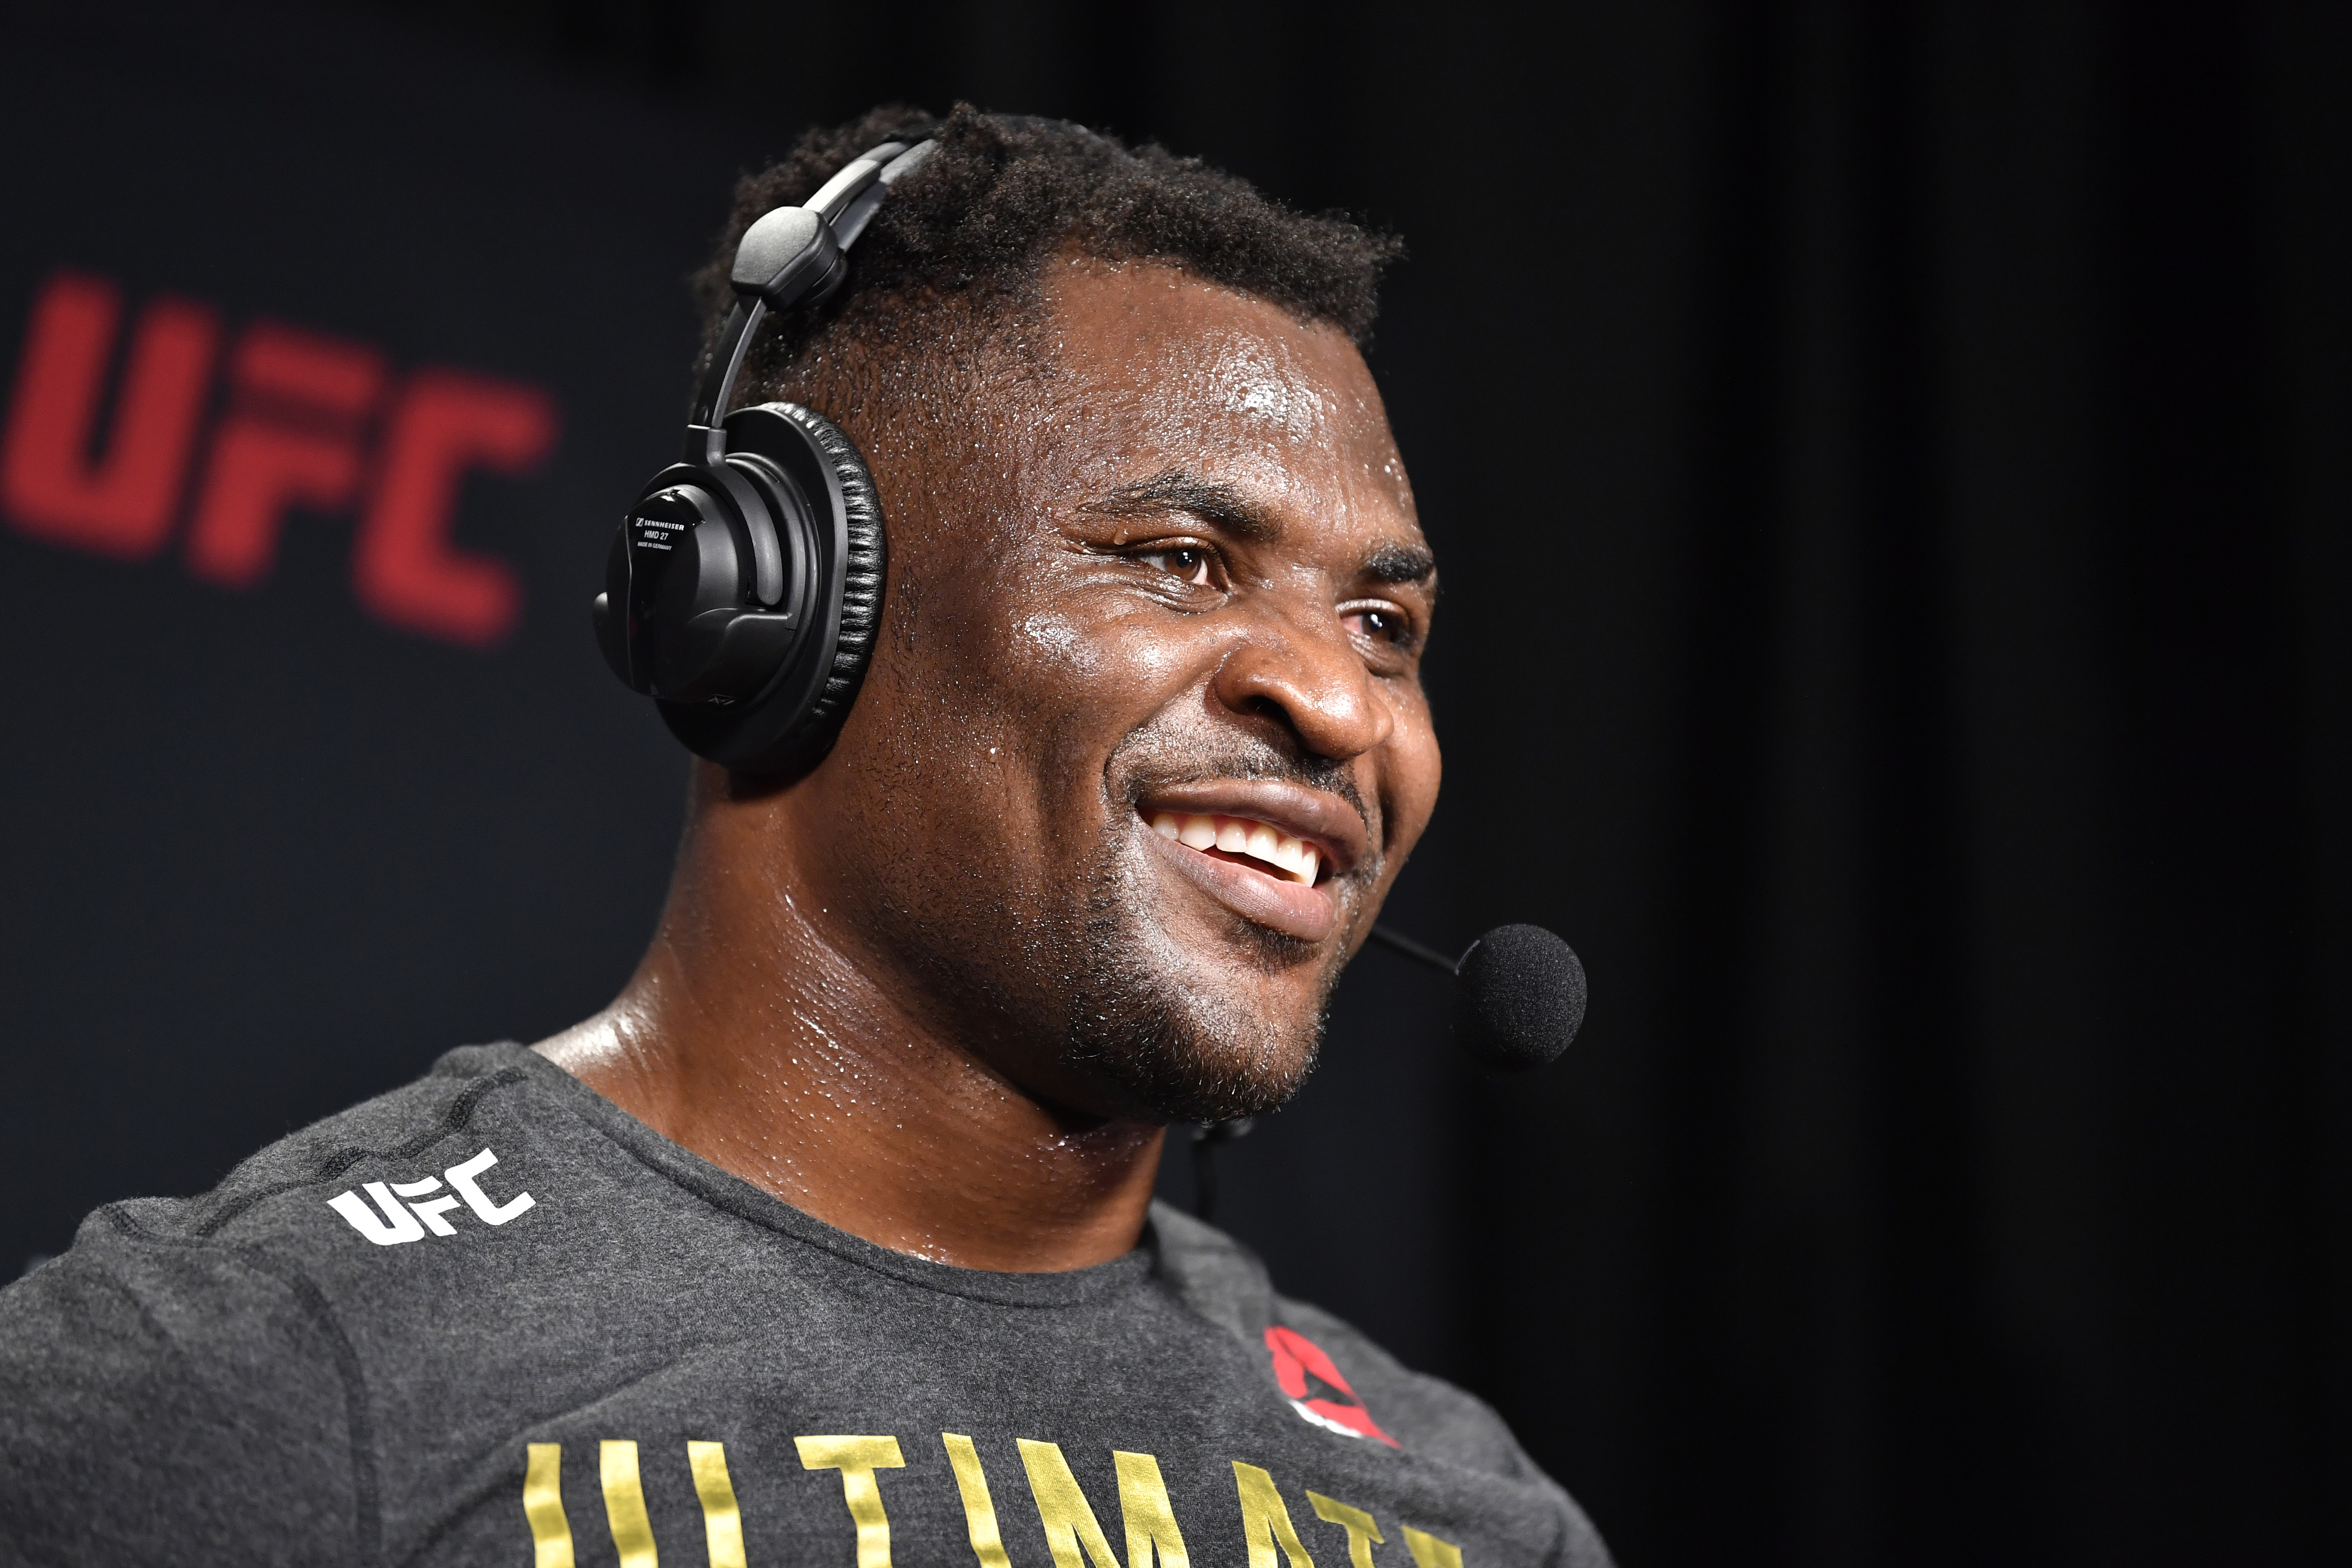 Francis Ngannou Went From Working in an African Mine to Building the 1st MMA Gym in His Native Cameroon